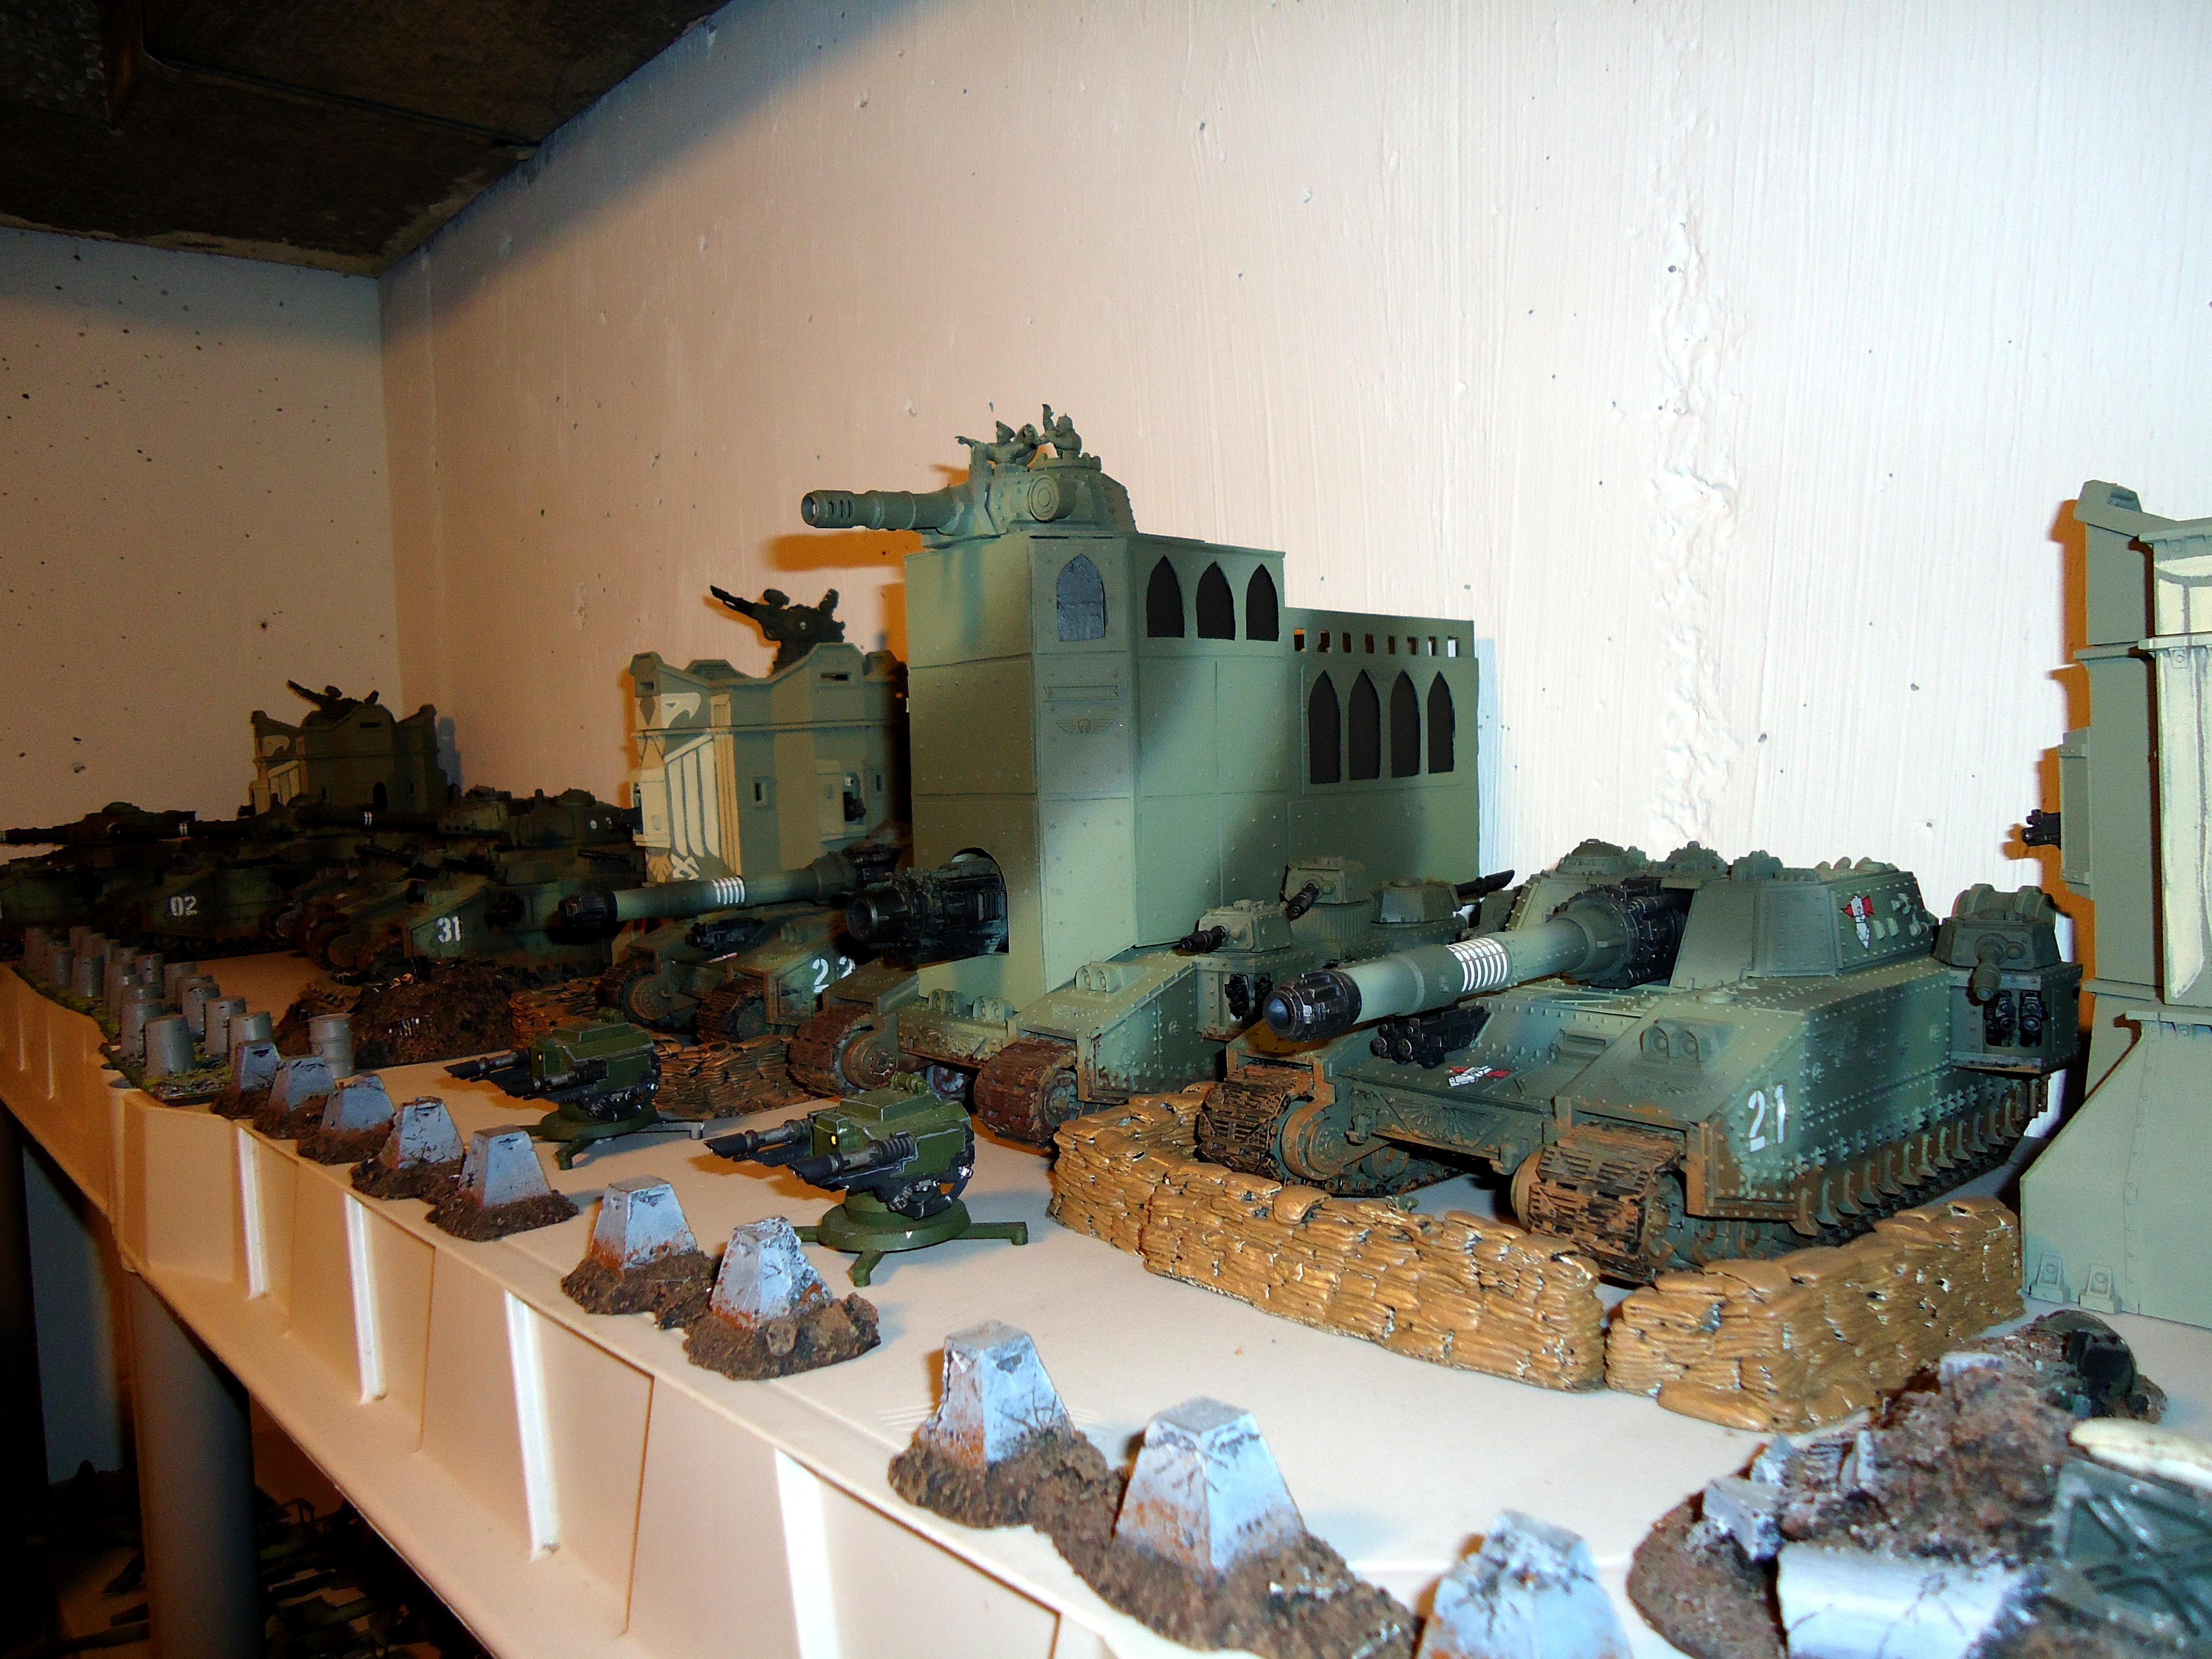 Apocalypse, Armor, Armored Company, Army, Brigade, Imperial Guard, Leviathan, Shadowsword, Super-heavy, Tank, Work In Progress